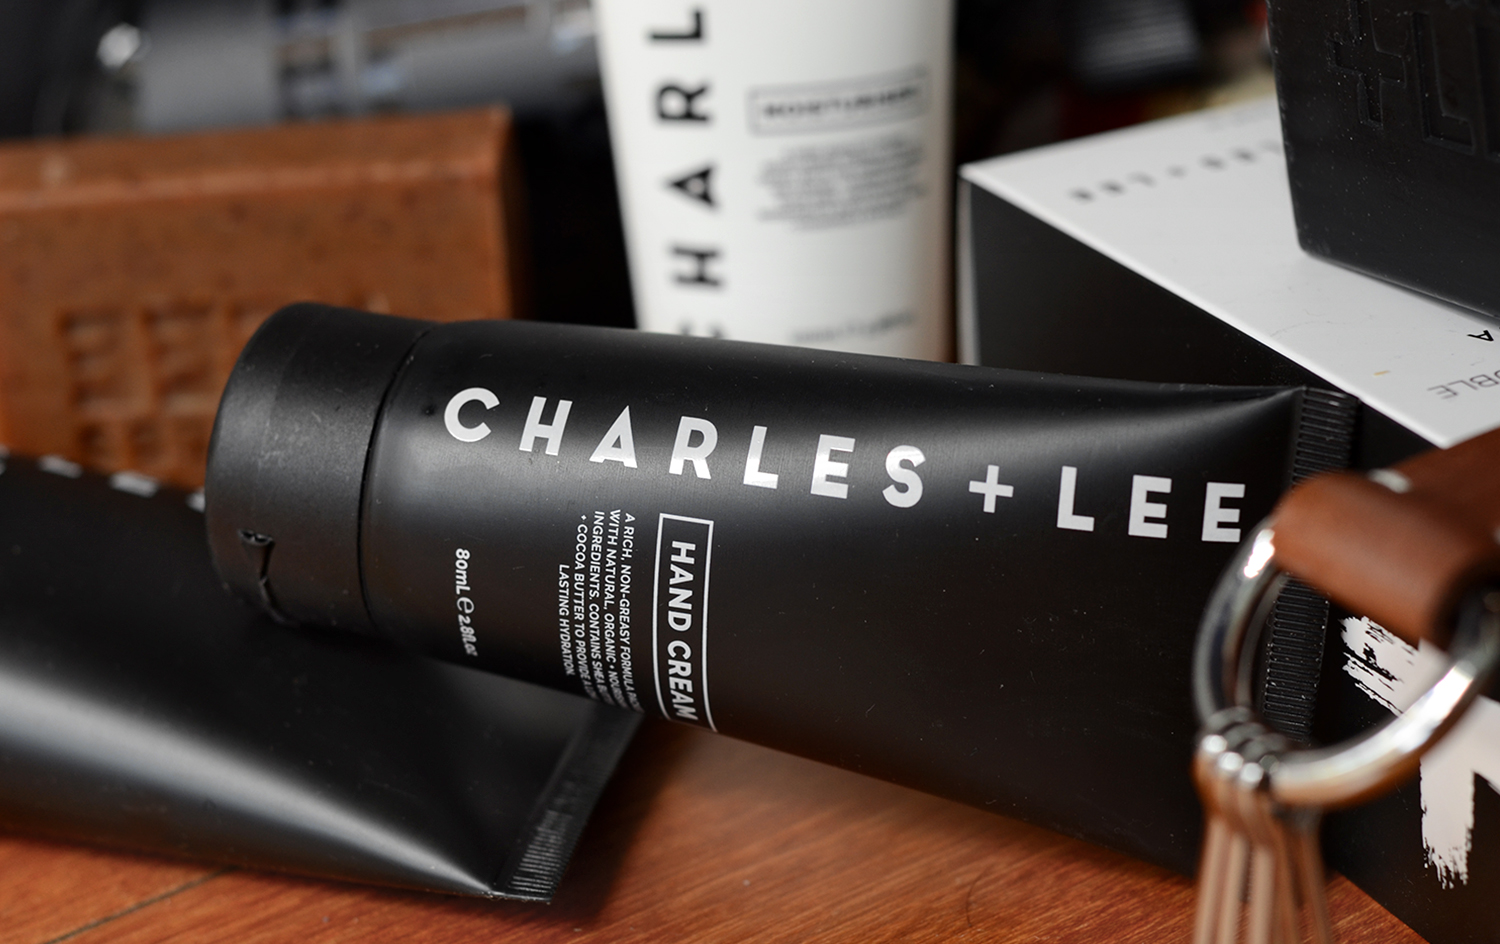 Charles + Lee mens grooming products, Australia mens blog magazine, mens premium skin care products,